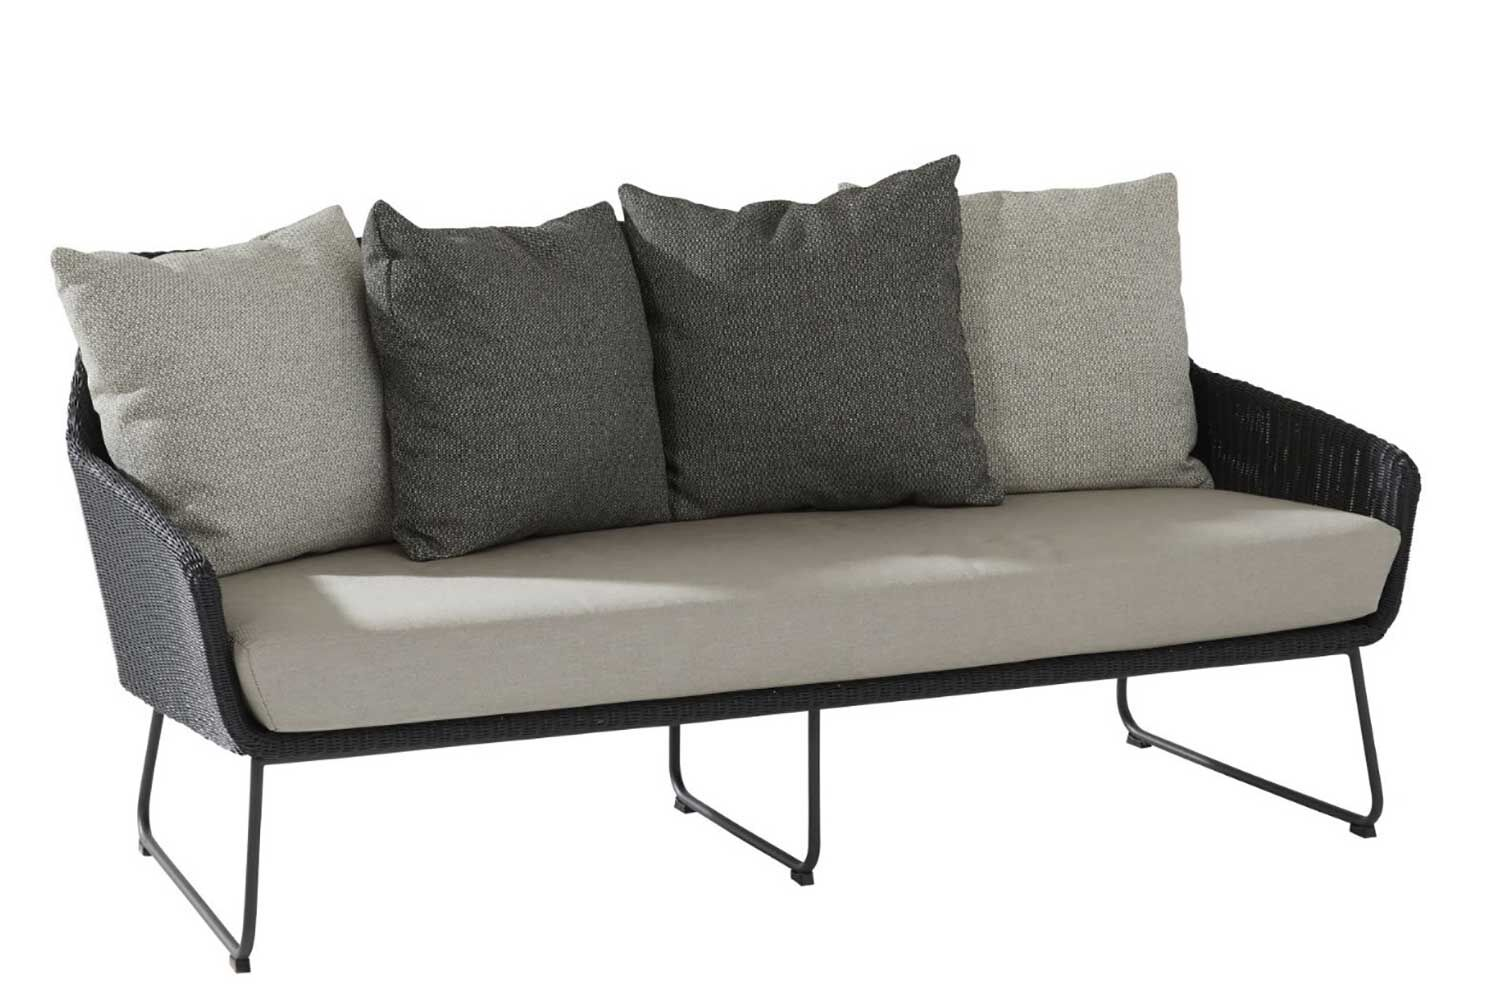 4 Seasons Outdoor Avila lounge tuinbank 2,5-zits met alu poten